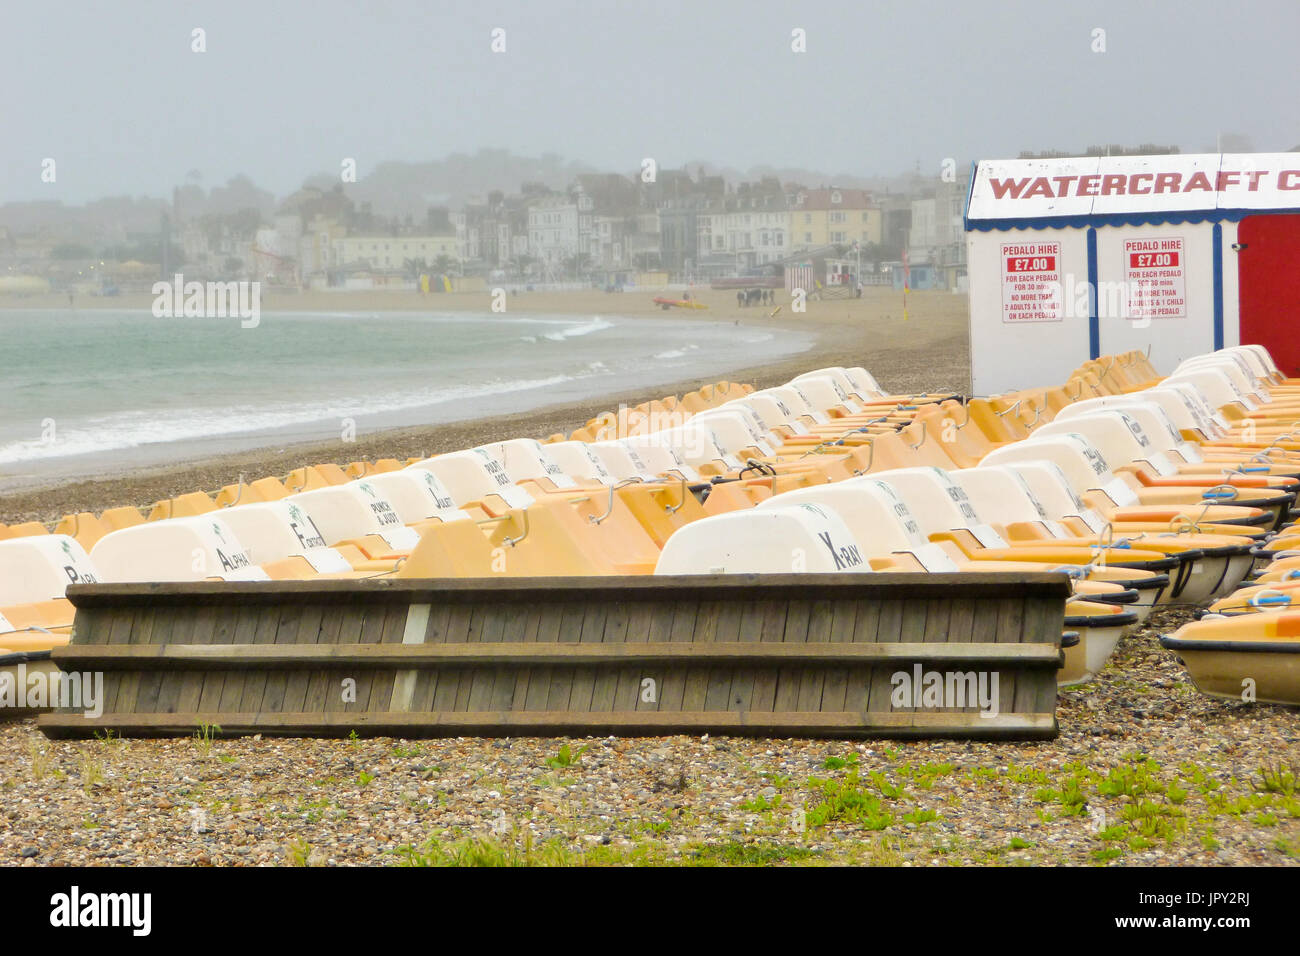 Weymouth, UK. 2nd Aug, 2017. Piles of pedalos lie, unused, on rainy Weymouth sands Credit: stuart fretwell/Alamy Live News - Stock Image